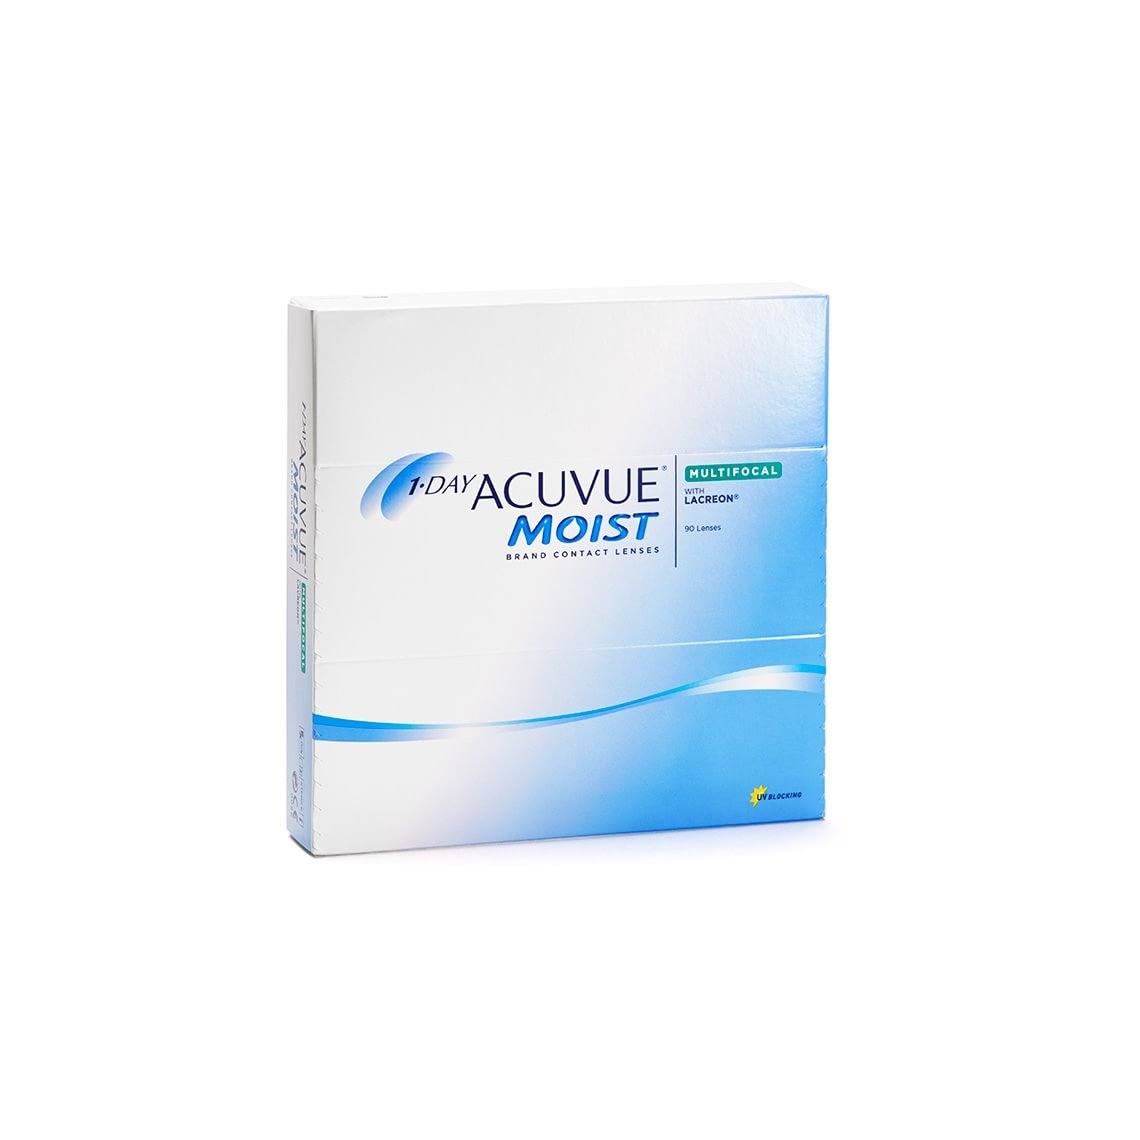 1-Day Acuvue Moist Multifocal 90 stk/pakke